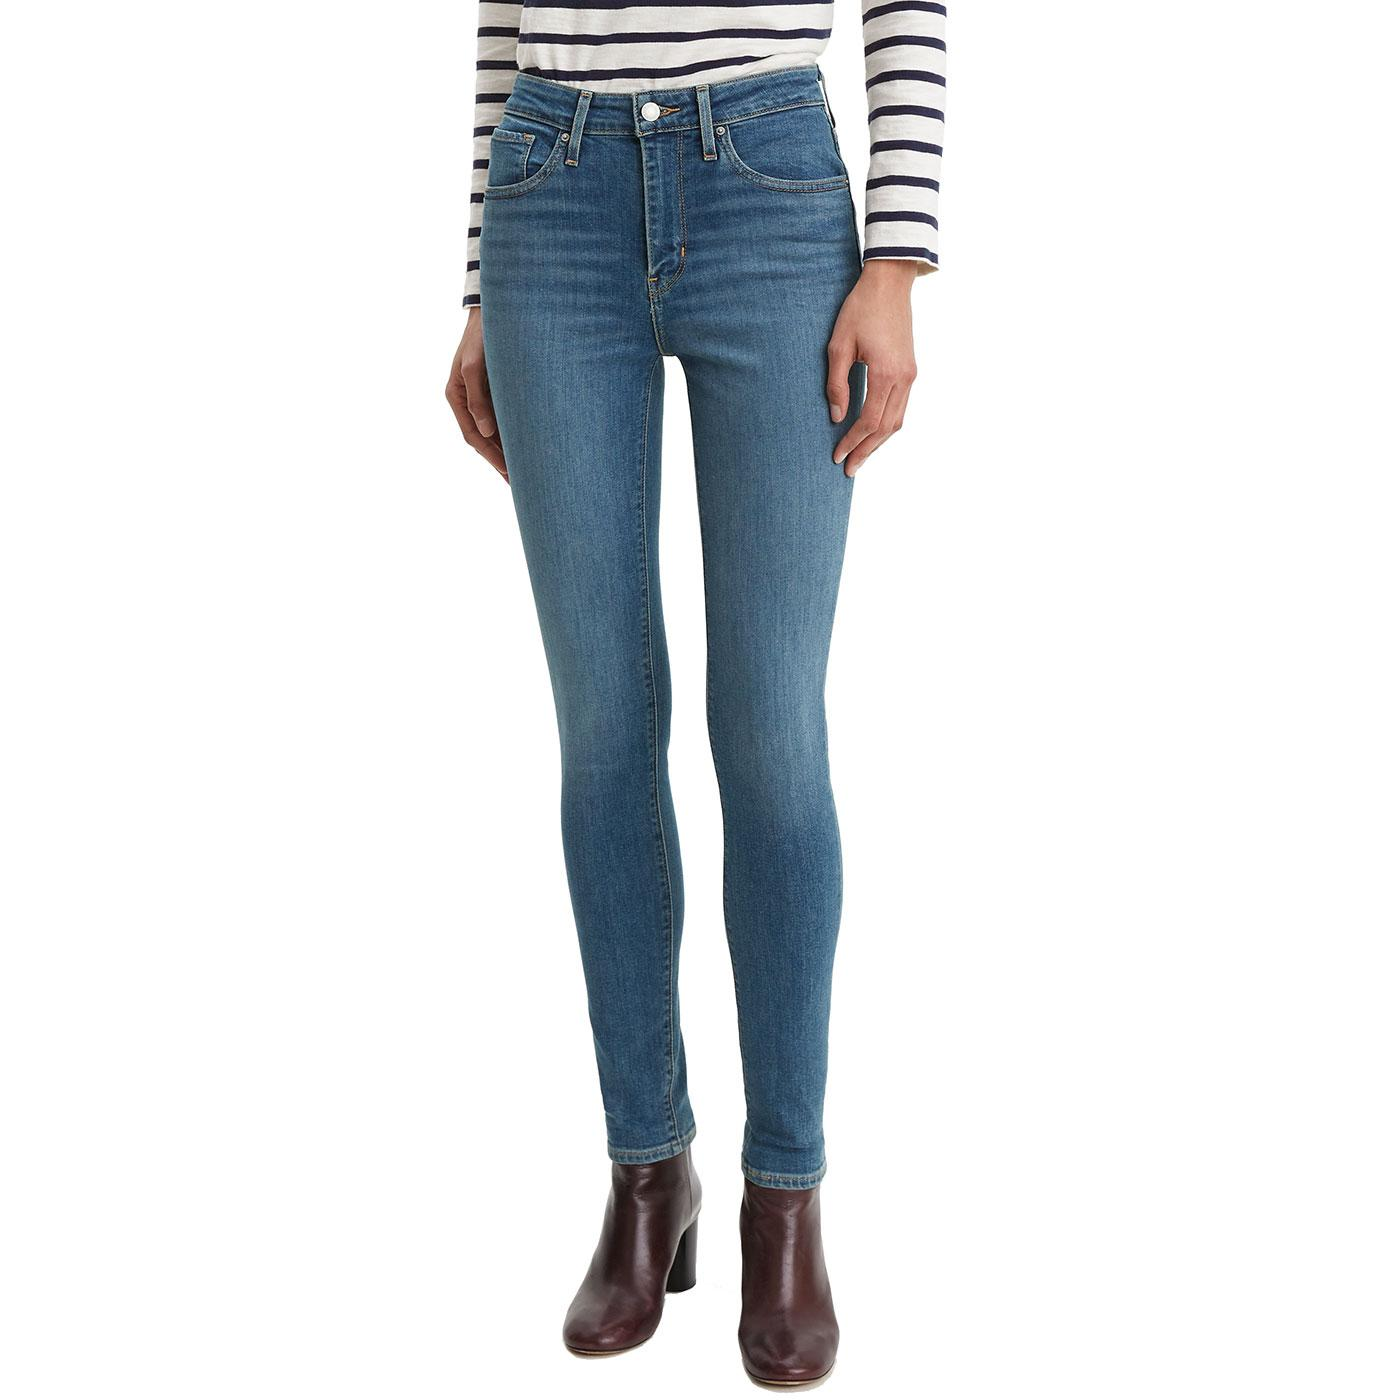 LEVI'S 721 High Rise Skinny Jeans LOS ANGELES SUN